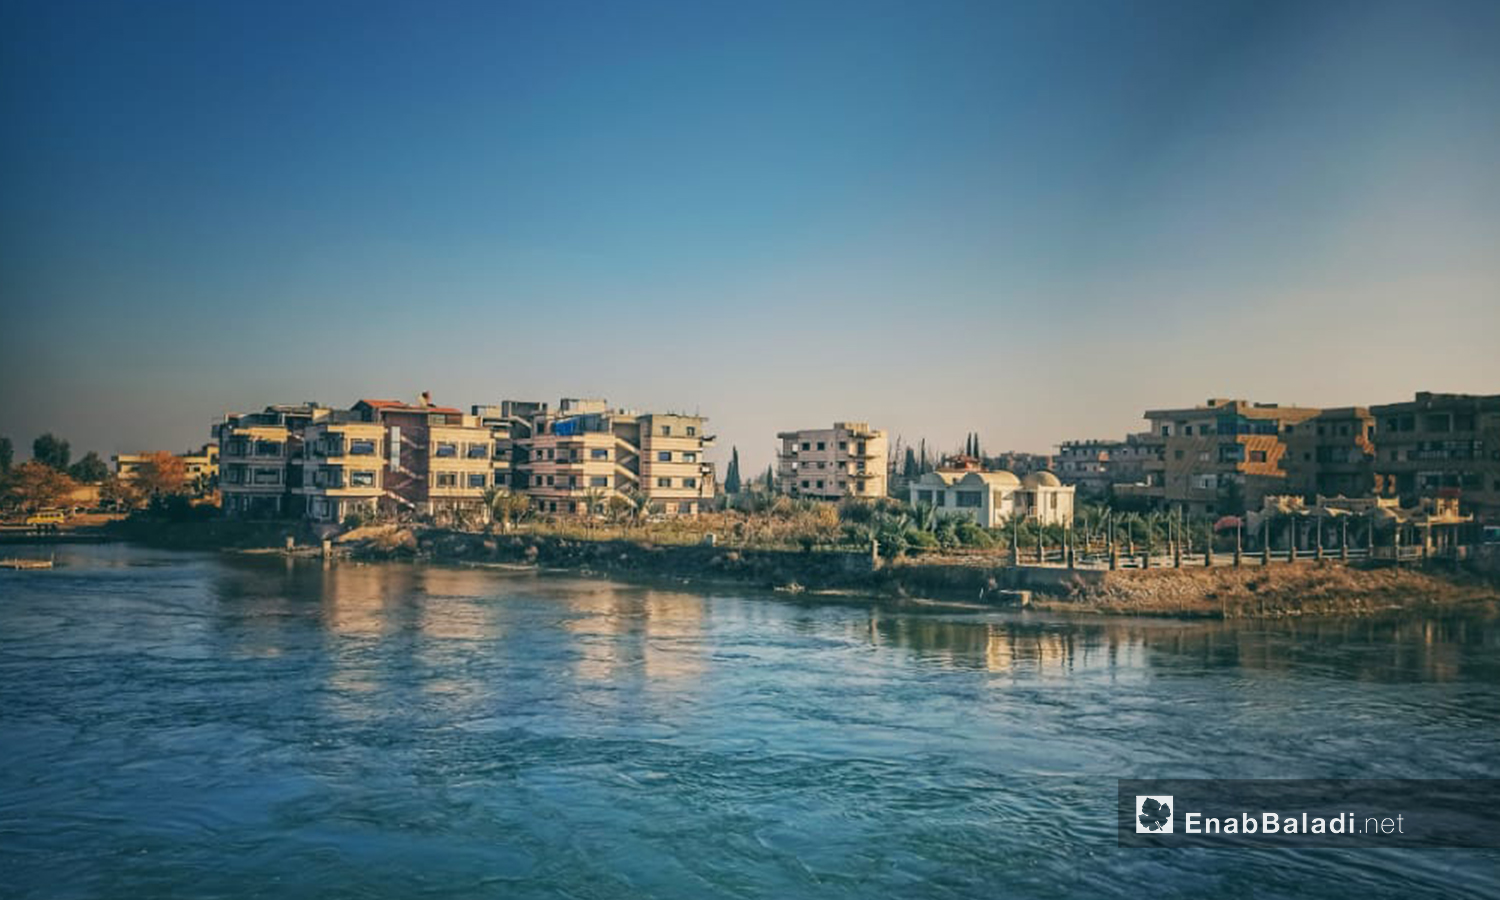 Residential buildings overlooking the Euphrates River in al-Raqqa city, northern Syria - 09 July 2020 (Enab Baladi)